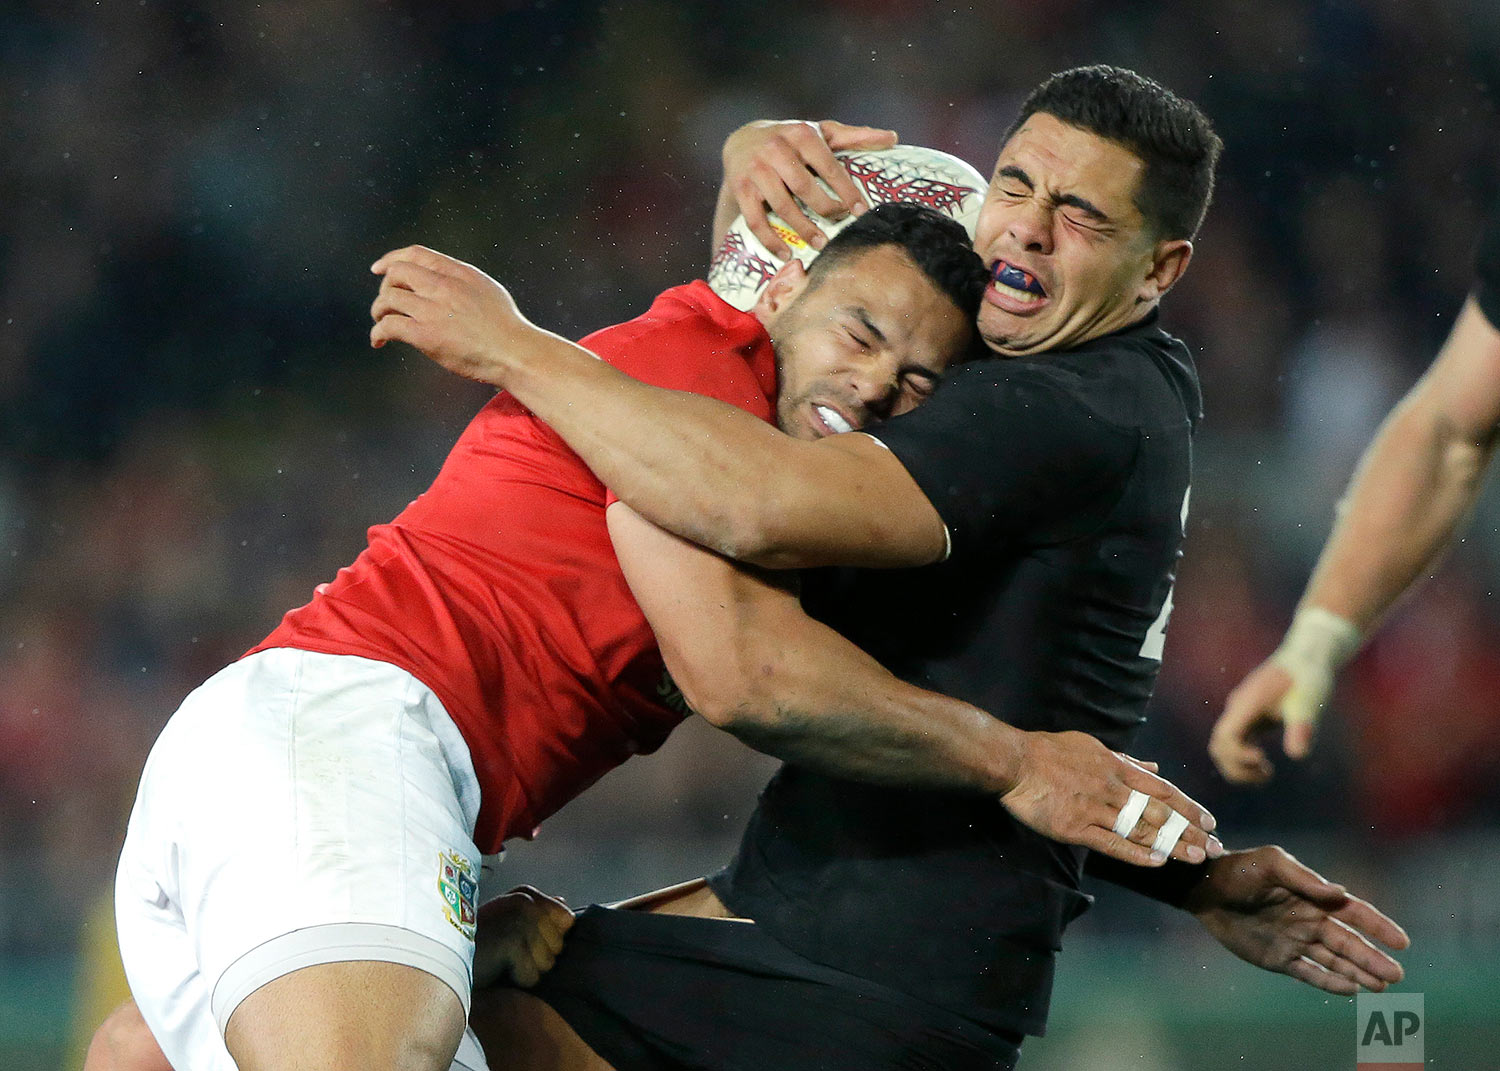 All Blacks centre Anton Linert-Brown, right, is tackled by British and Irish Lions Ben Te'o during the first test between the British and Irish Lions and the All Blacks at Eden Park in Auckland, New Zealand, Saturday, June 24, 2017. (AP Photo/Mark Baker)